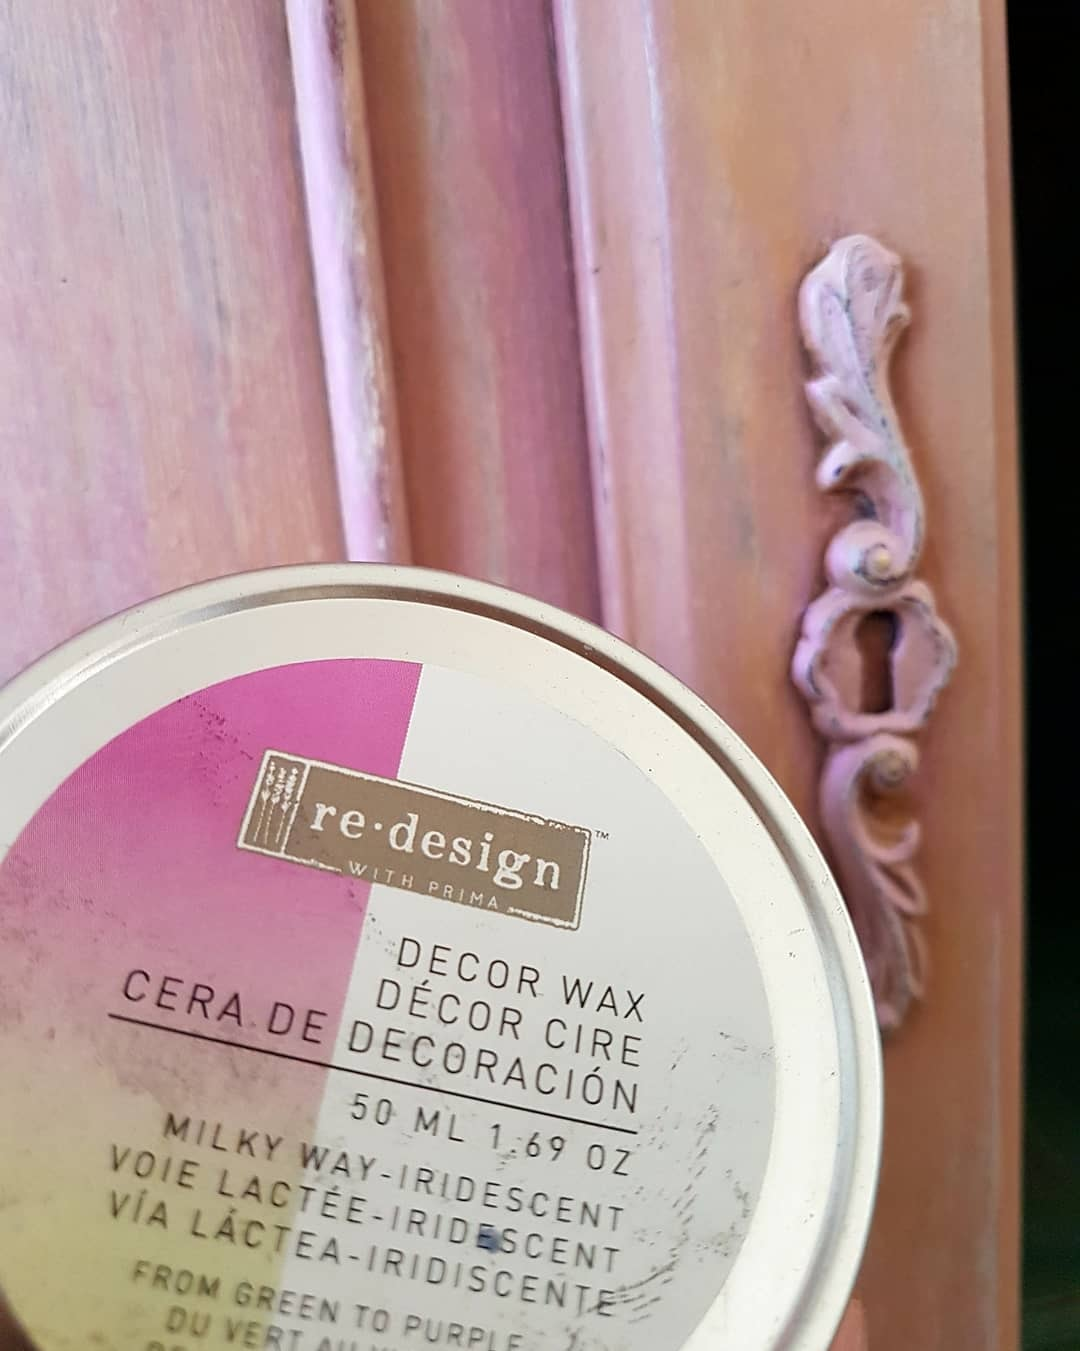 Magdalena took it up a notch by adding our new soon-to-be-released decor wax. This wax has an iridescent quality to it, allowing you to add over other colors without overpowering them,yet giving it an pretty pearl like finish.